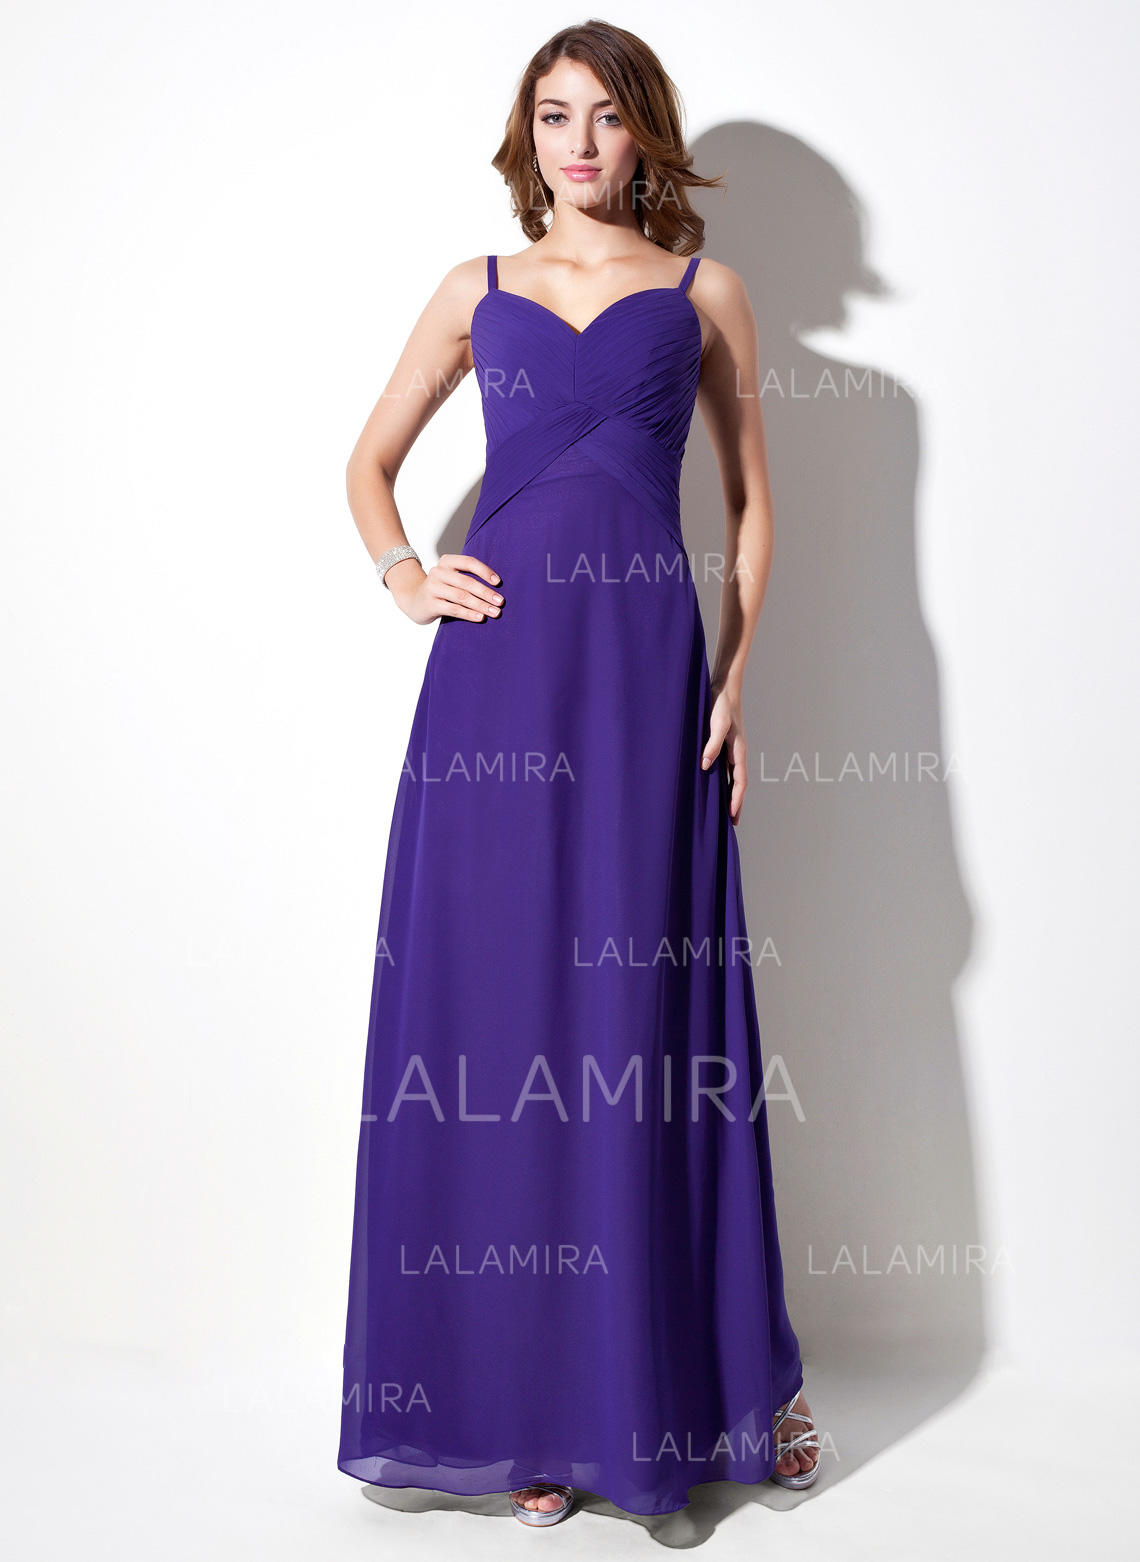 4351822f7957 Empire Chiffon Bridesmaid Dresses Ruffle V-neck Sleeveless Floor-Length  (007001784). Loading zoom